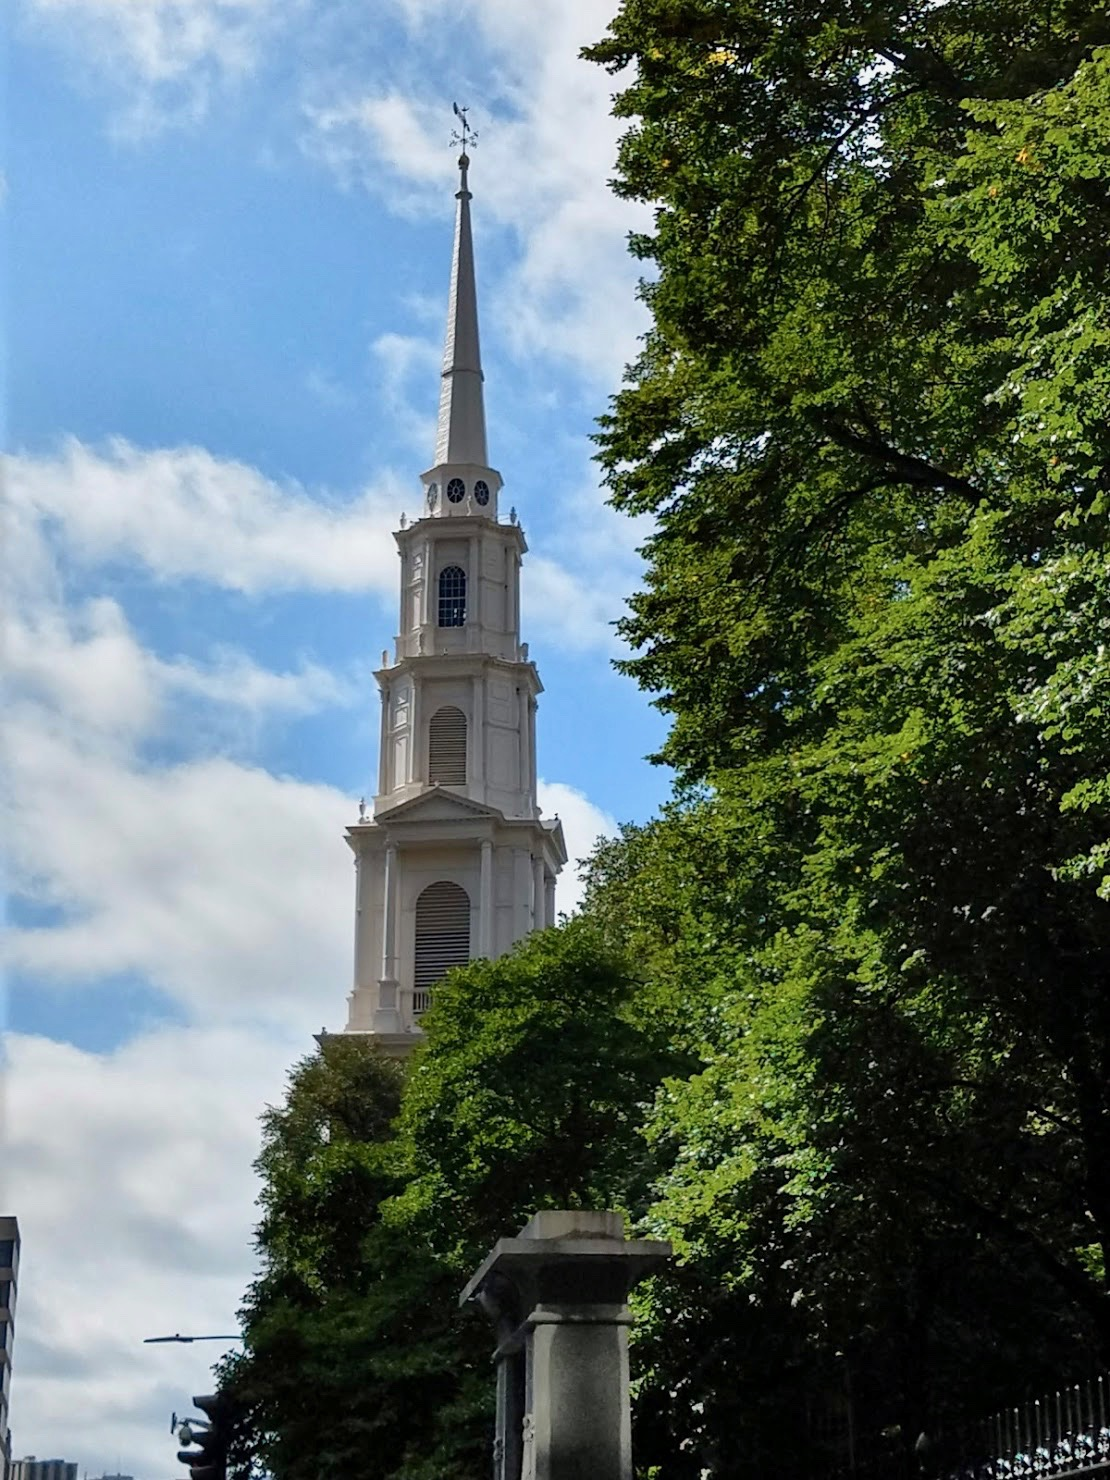 The Park Street Church in Boston